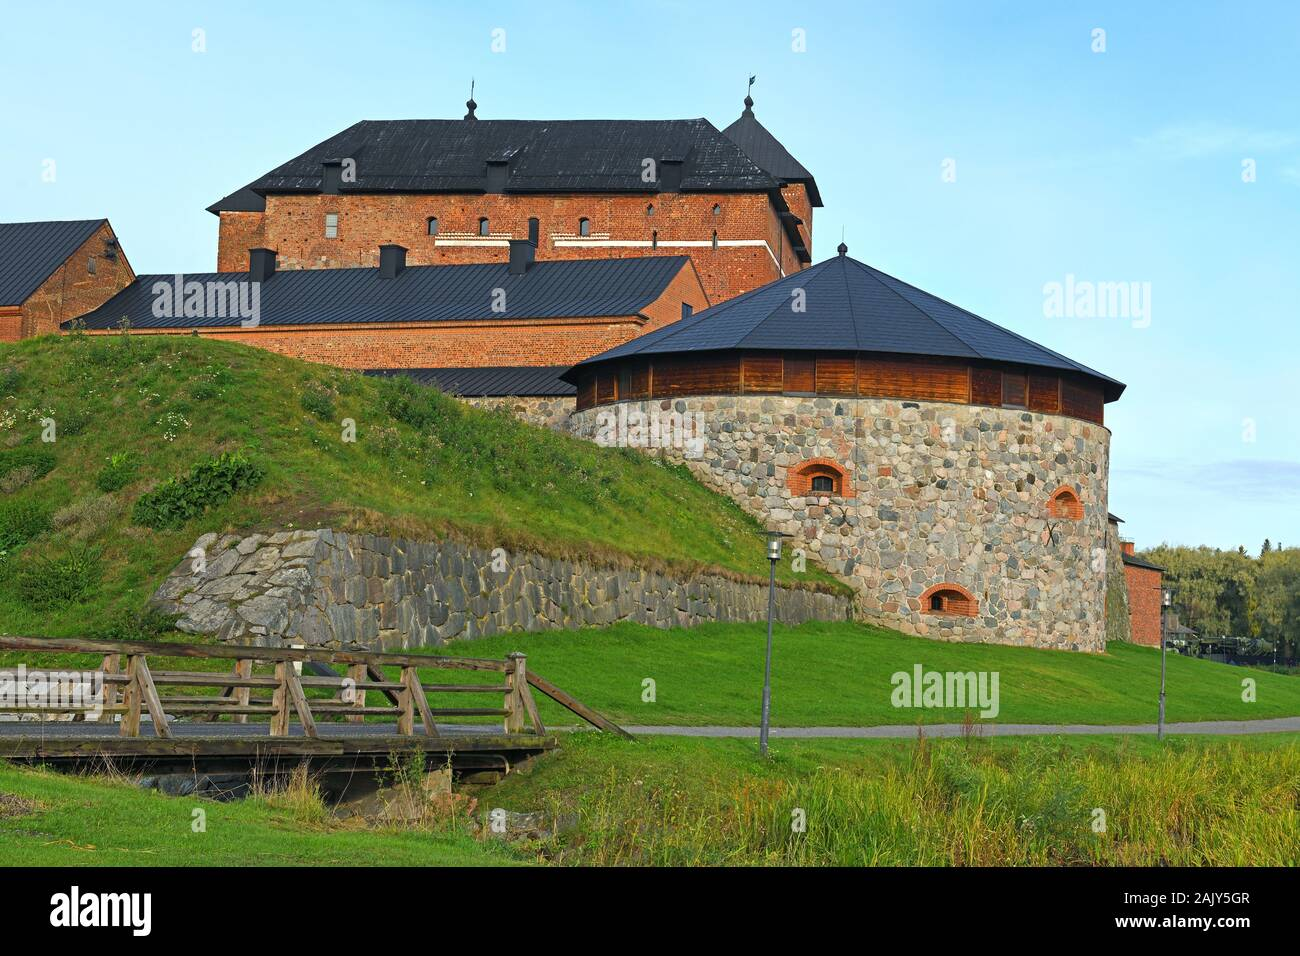 Medieval fortress on coast of lake Vanajavesi in old Hameenlinna, Finland Stock Photo